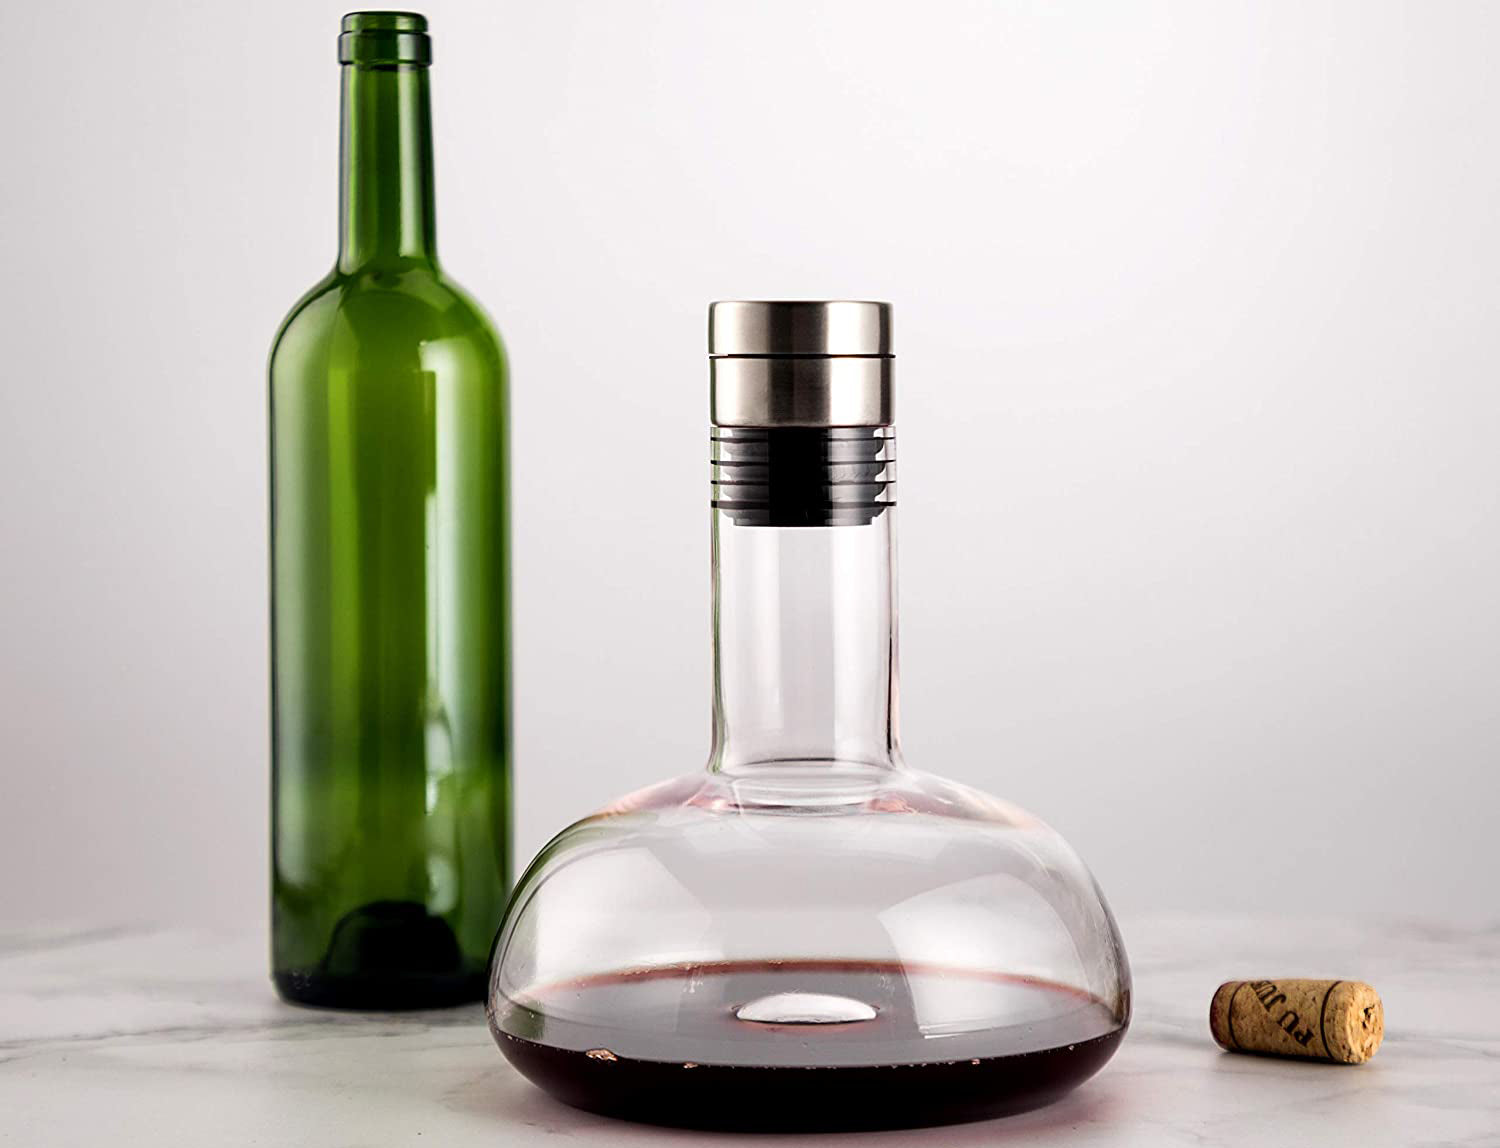 YouYah Wine Decanter Set